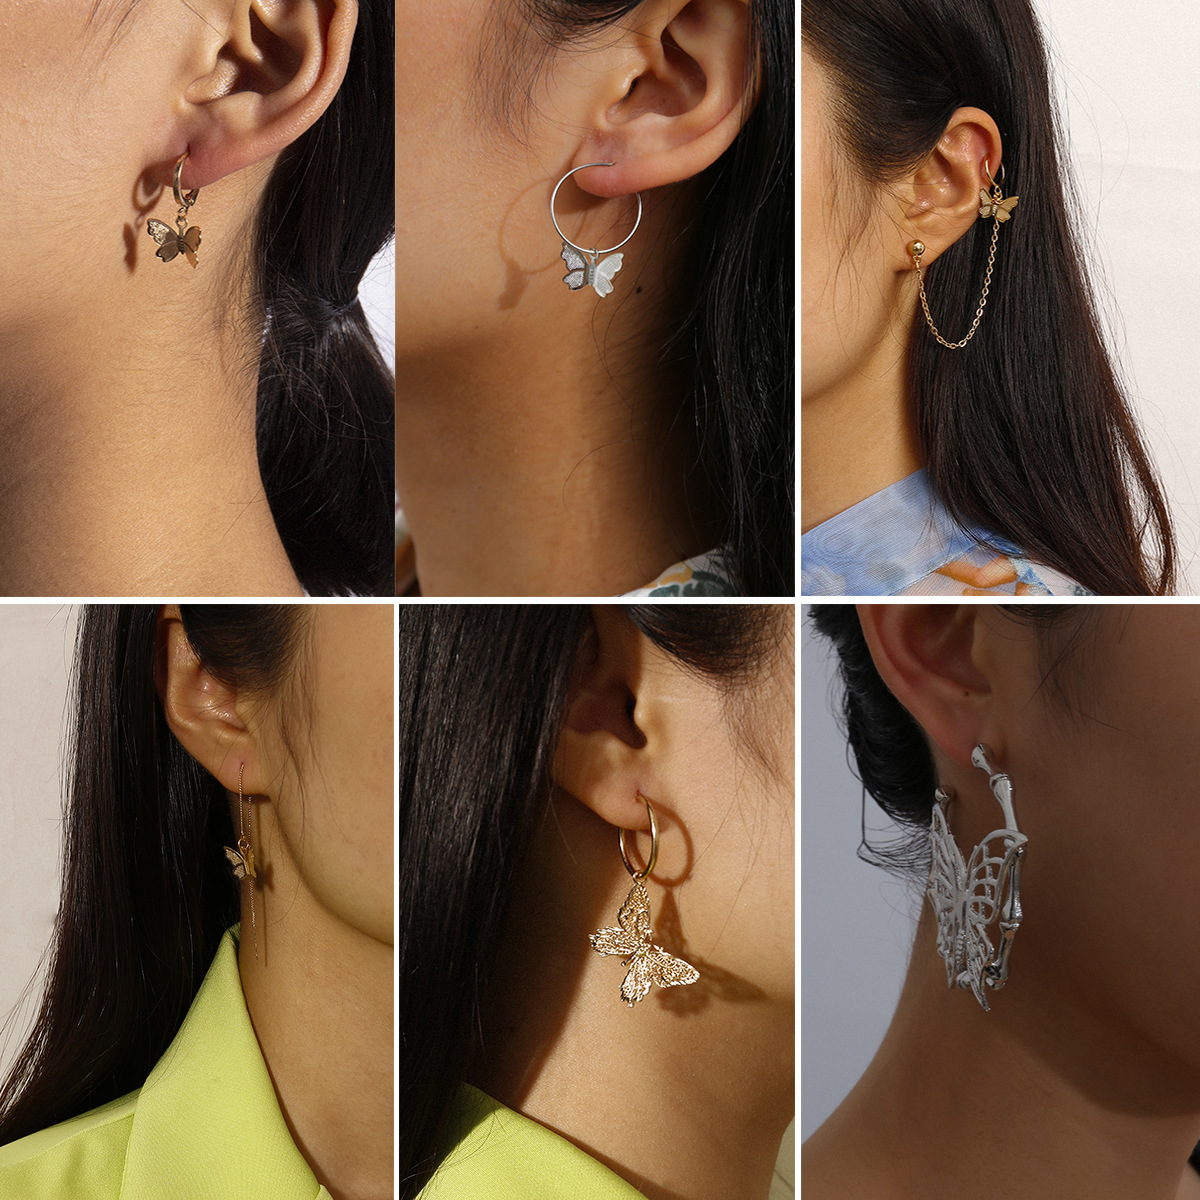 Cute Butterfly Earrings for Wearing with Modish Attire